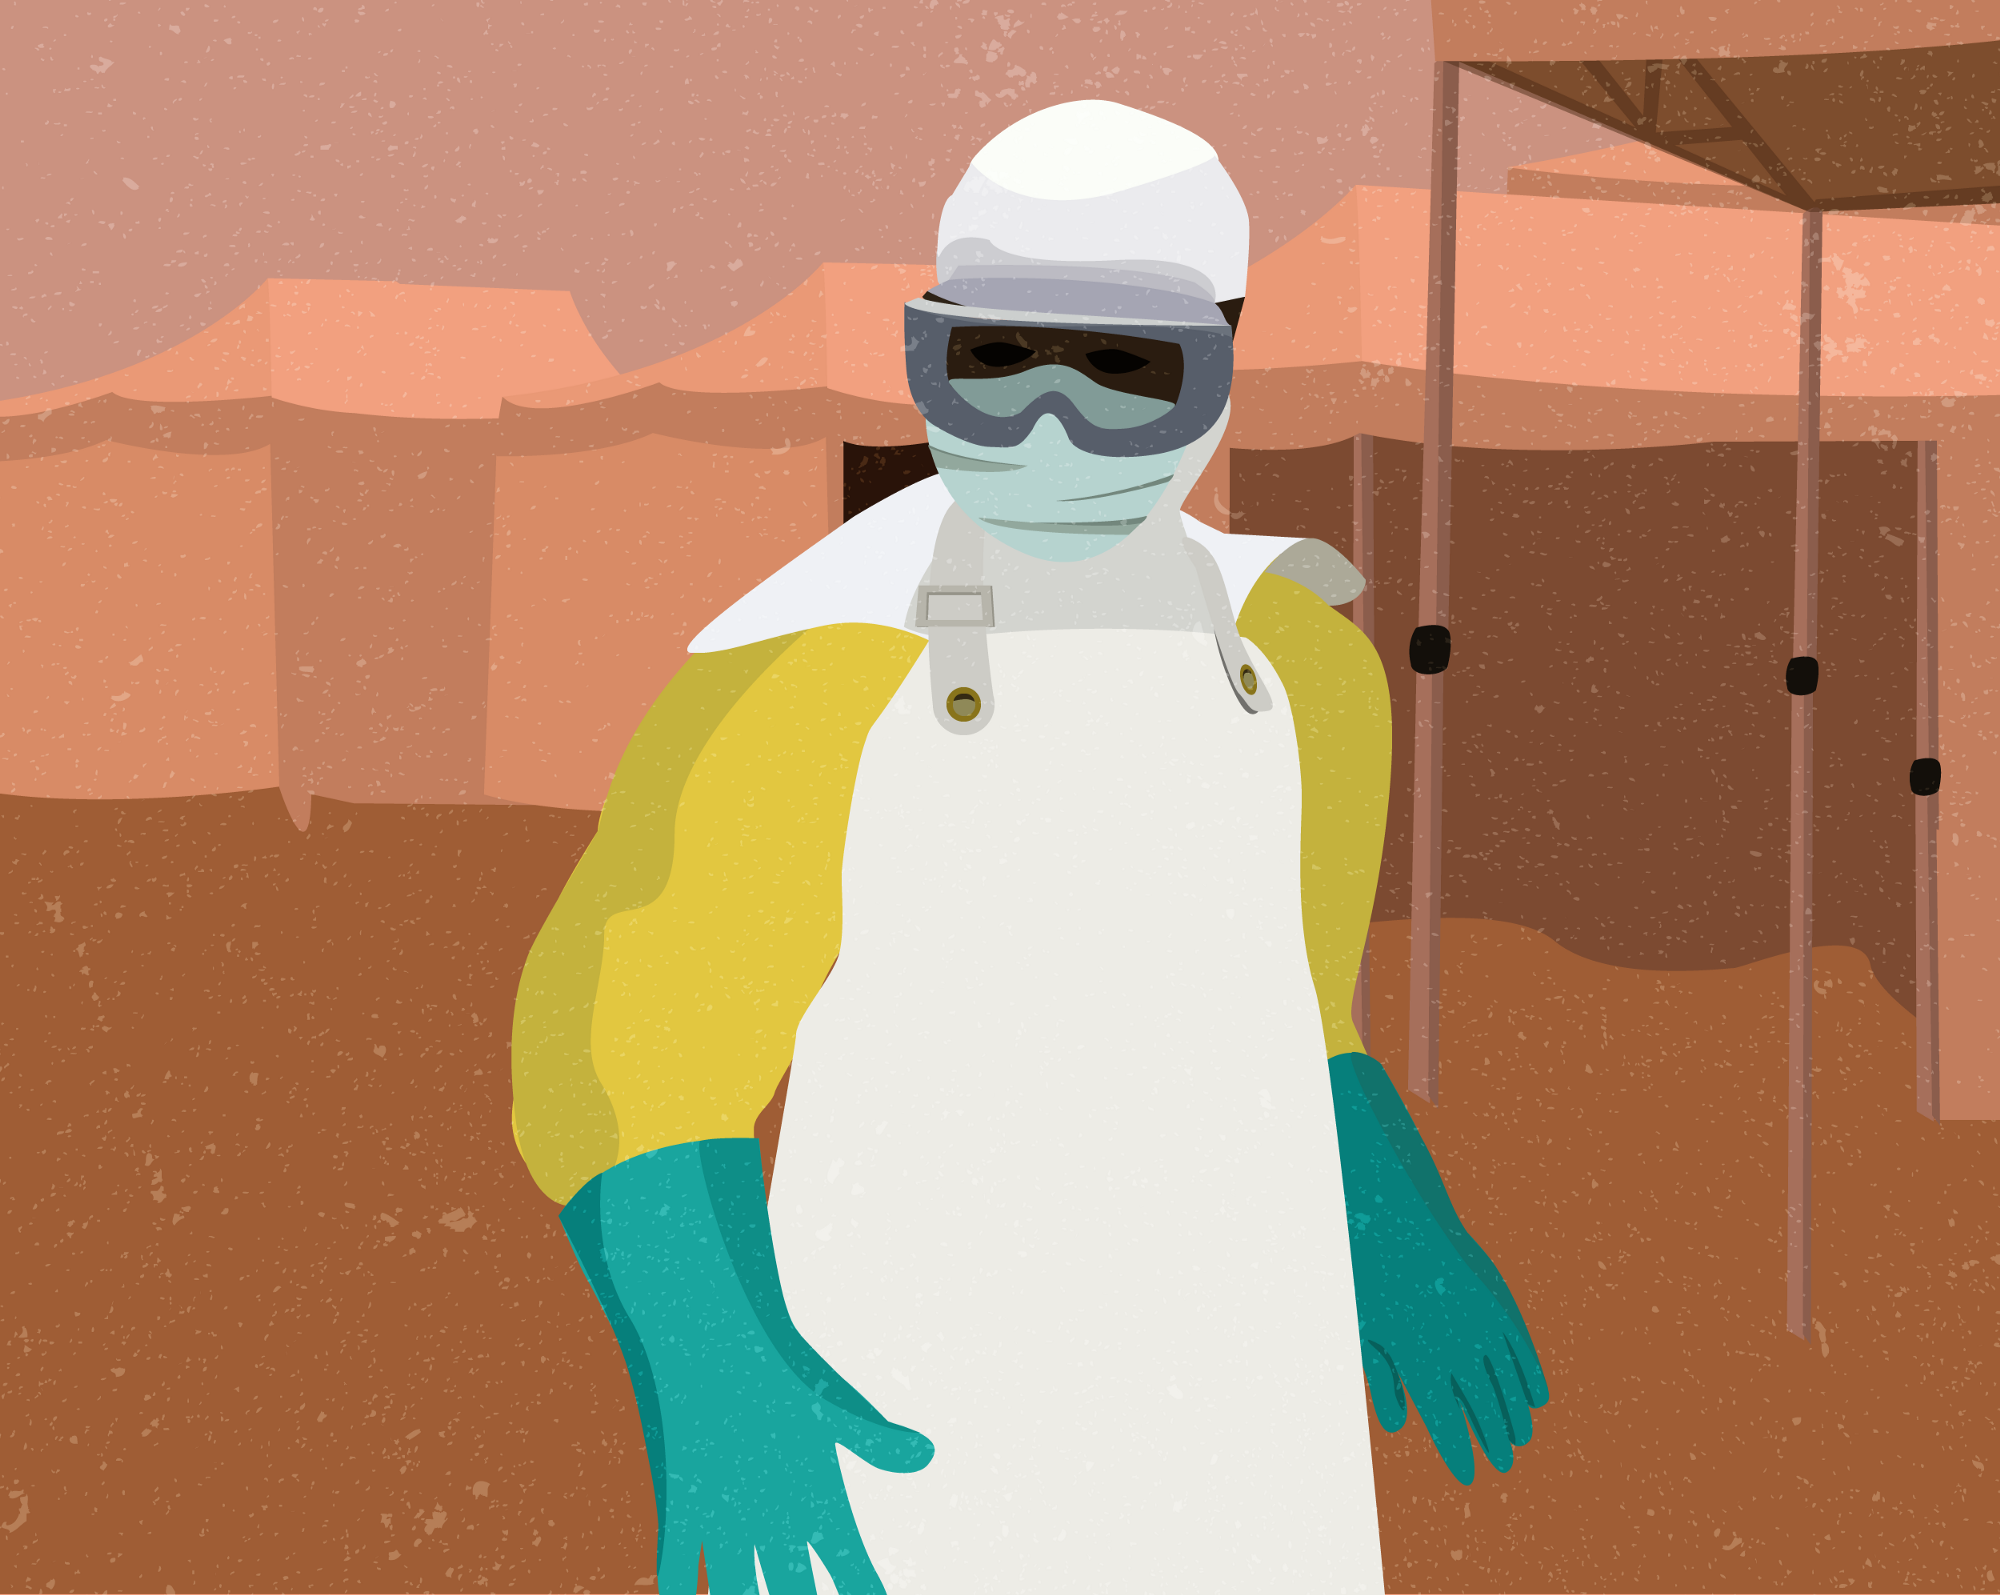 An illustration of a worker in full protective clothing — Ebola